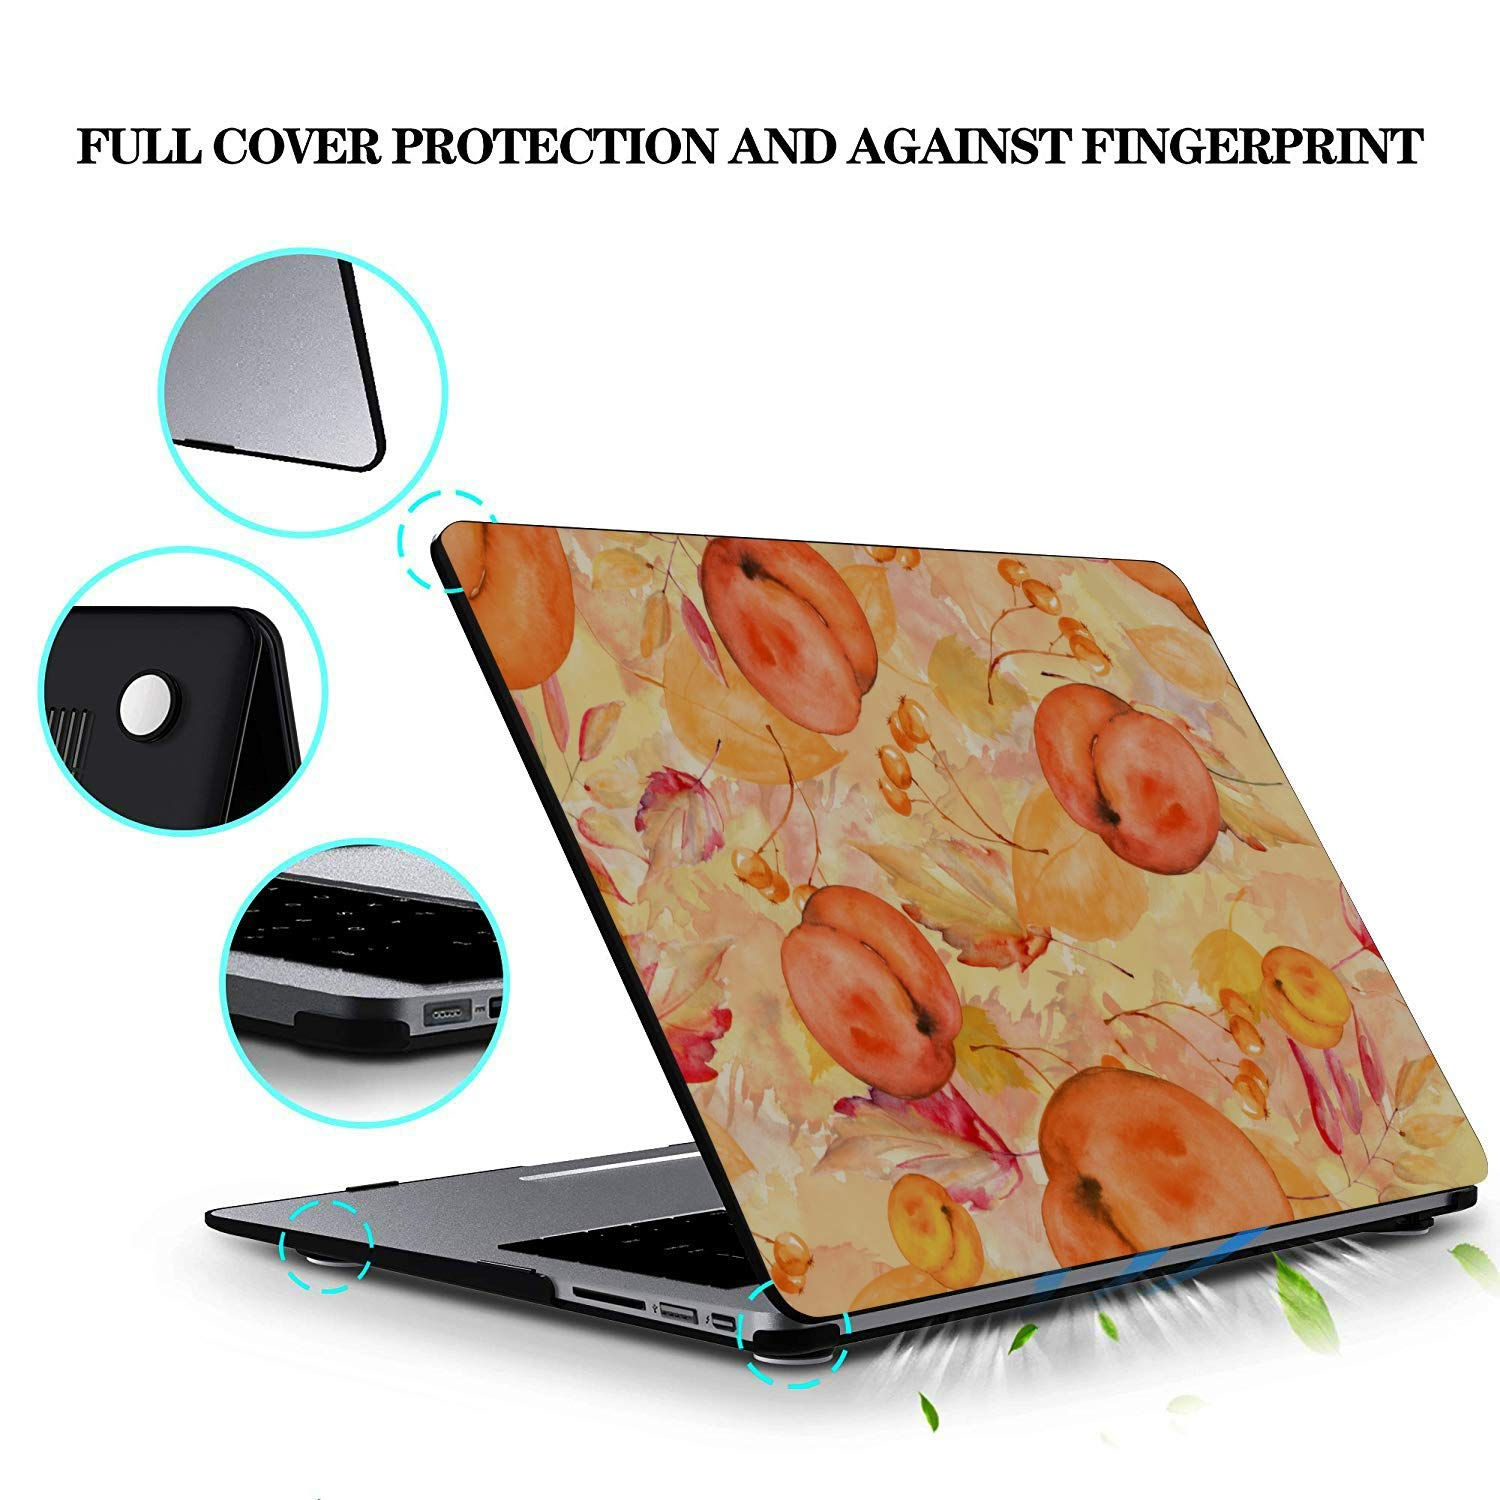 MacBook Pro 15 Case Summer Sweet Fruit Yellow Peach Canned Plastic Hard Shell Compatible Mac Air 11 Pro 13 15 MacBook Hard Case Protection for MacBook 2016-2019 Version